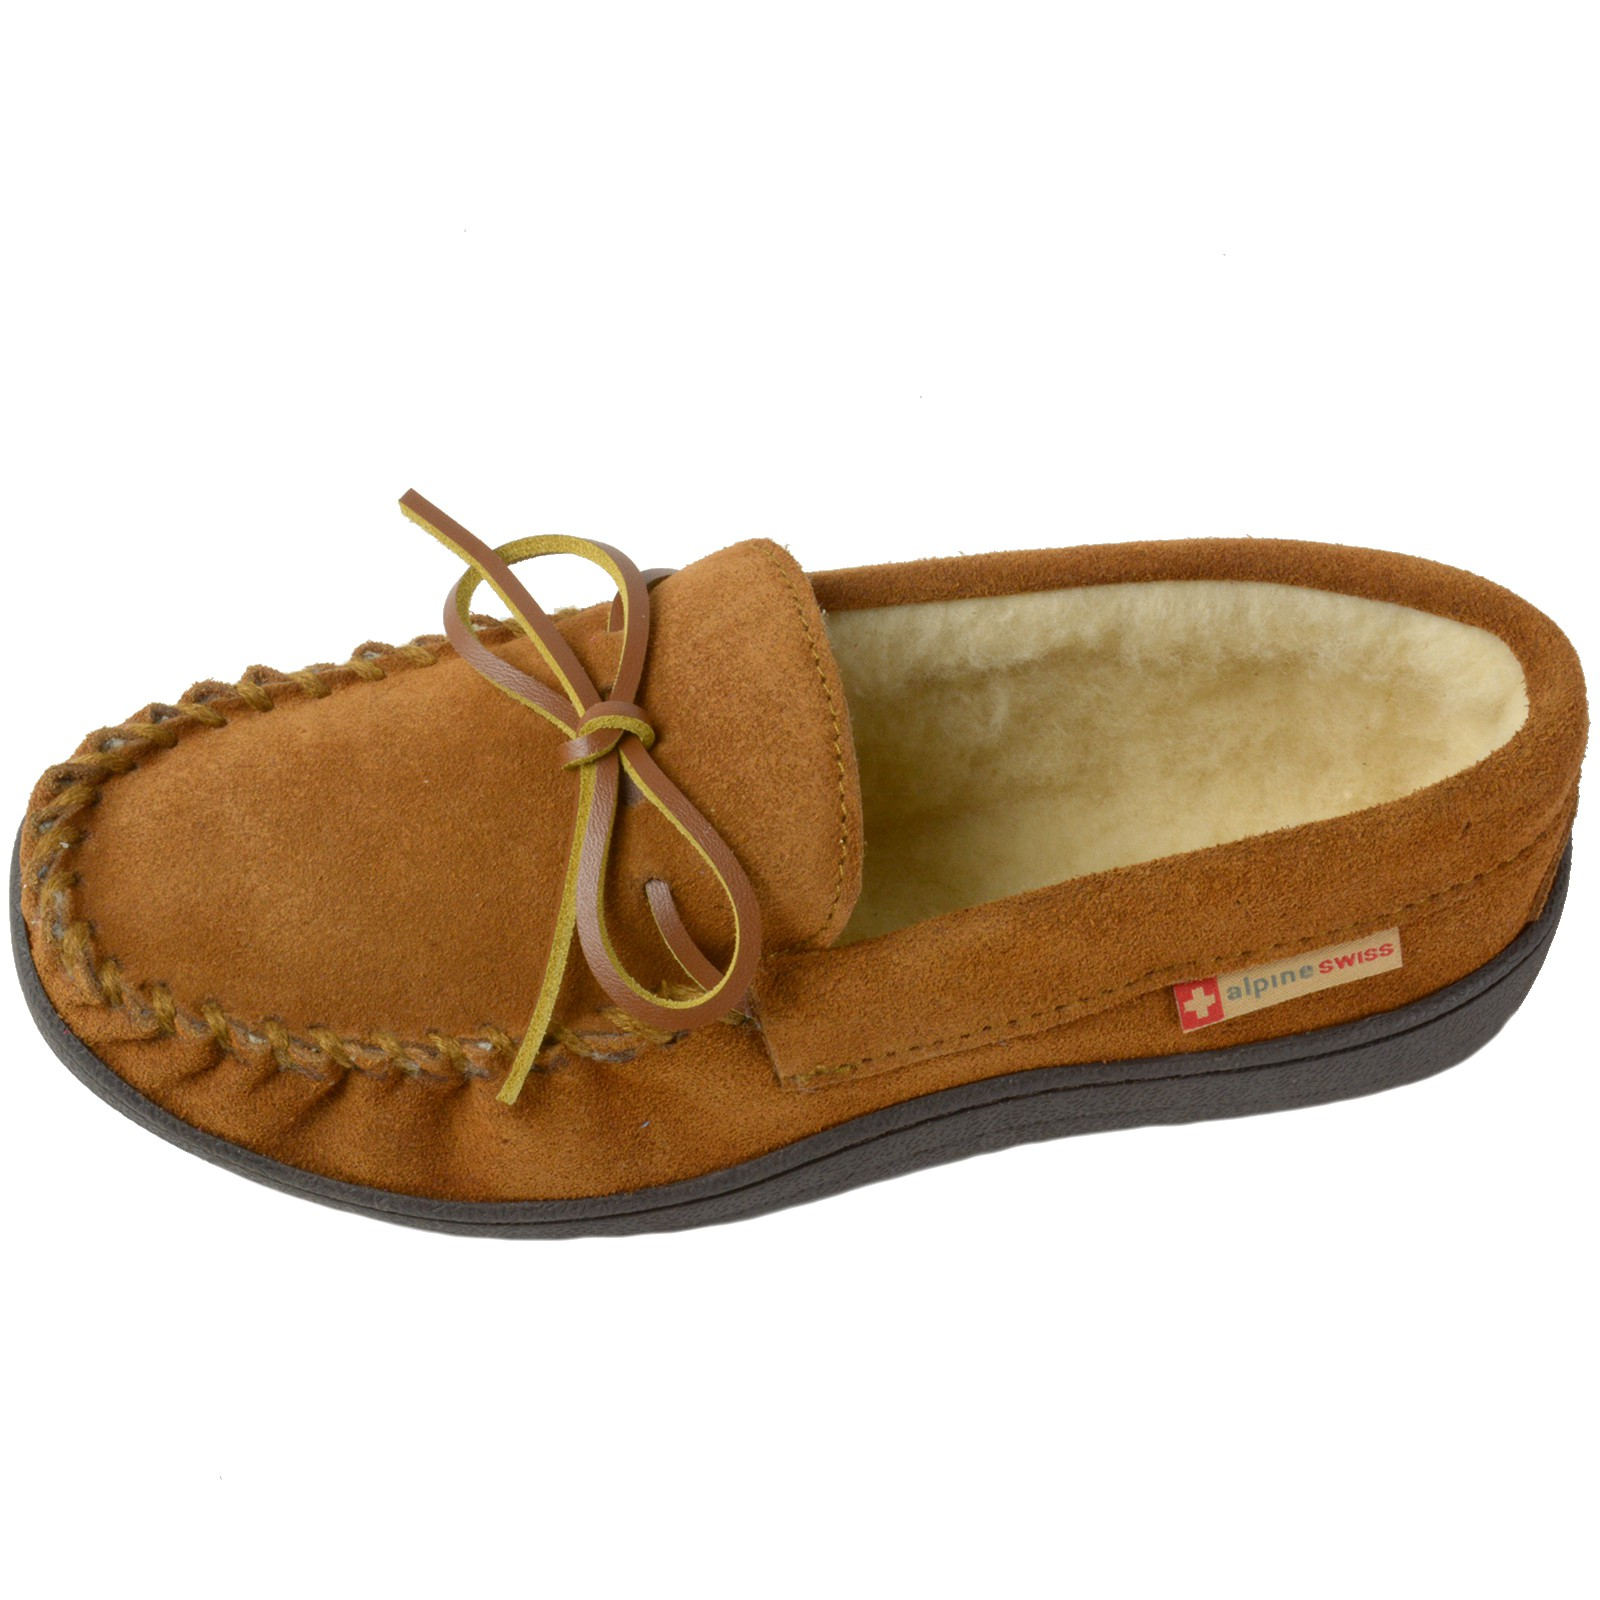 Alpine-Swiss-Sabine-Womens-Suede-Shearling-Moccasin-Slippers-House-Shoes-Slip-On miniature 27